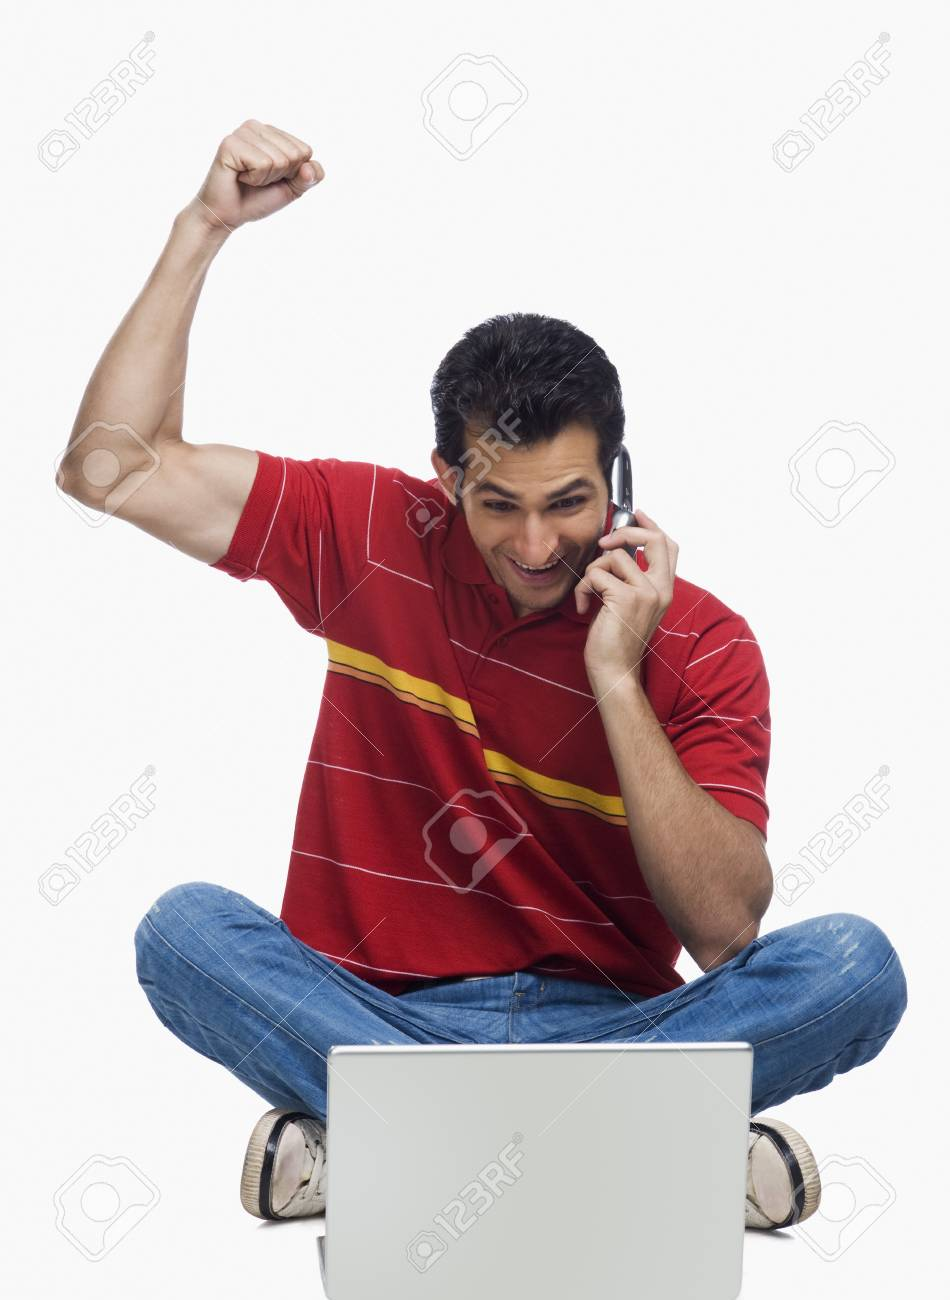 Man cheering in front of a laptop while using a mobile phone Stock Photo - 10125231